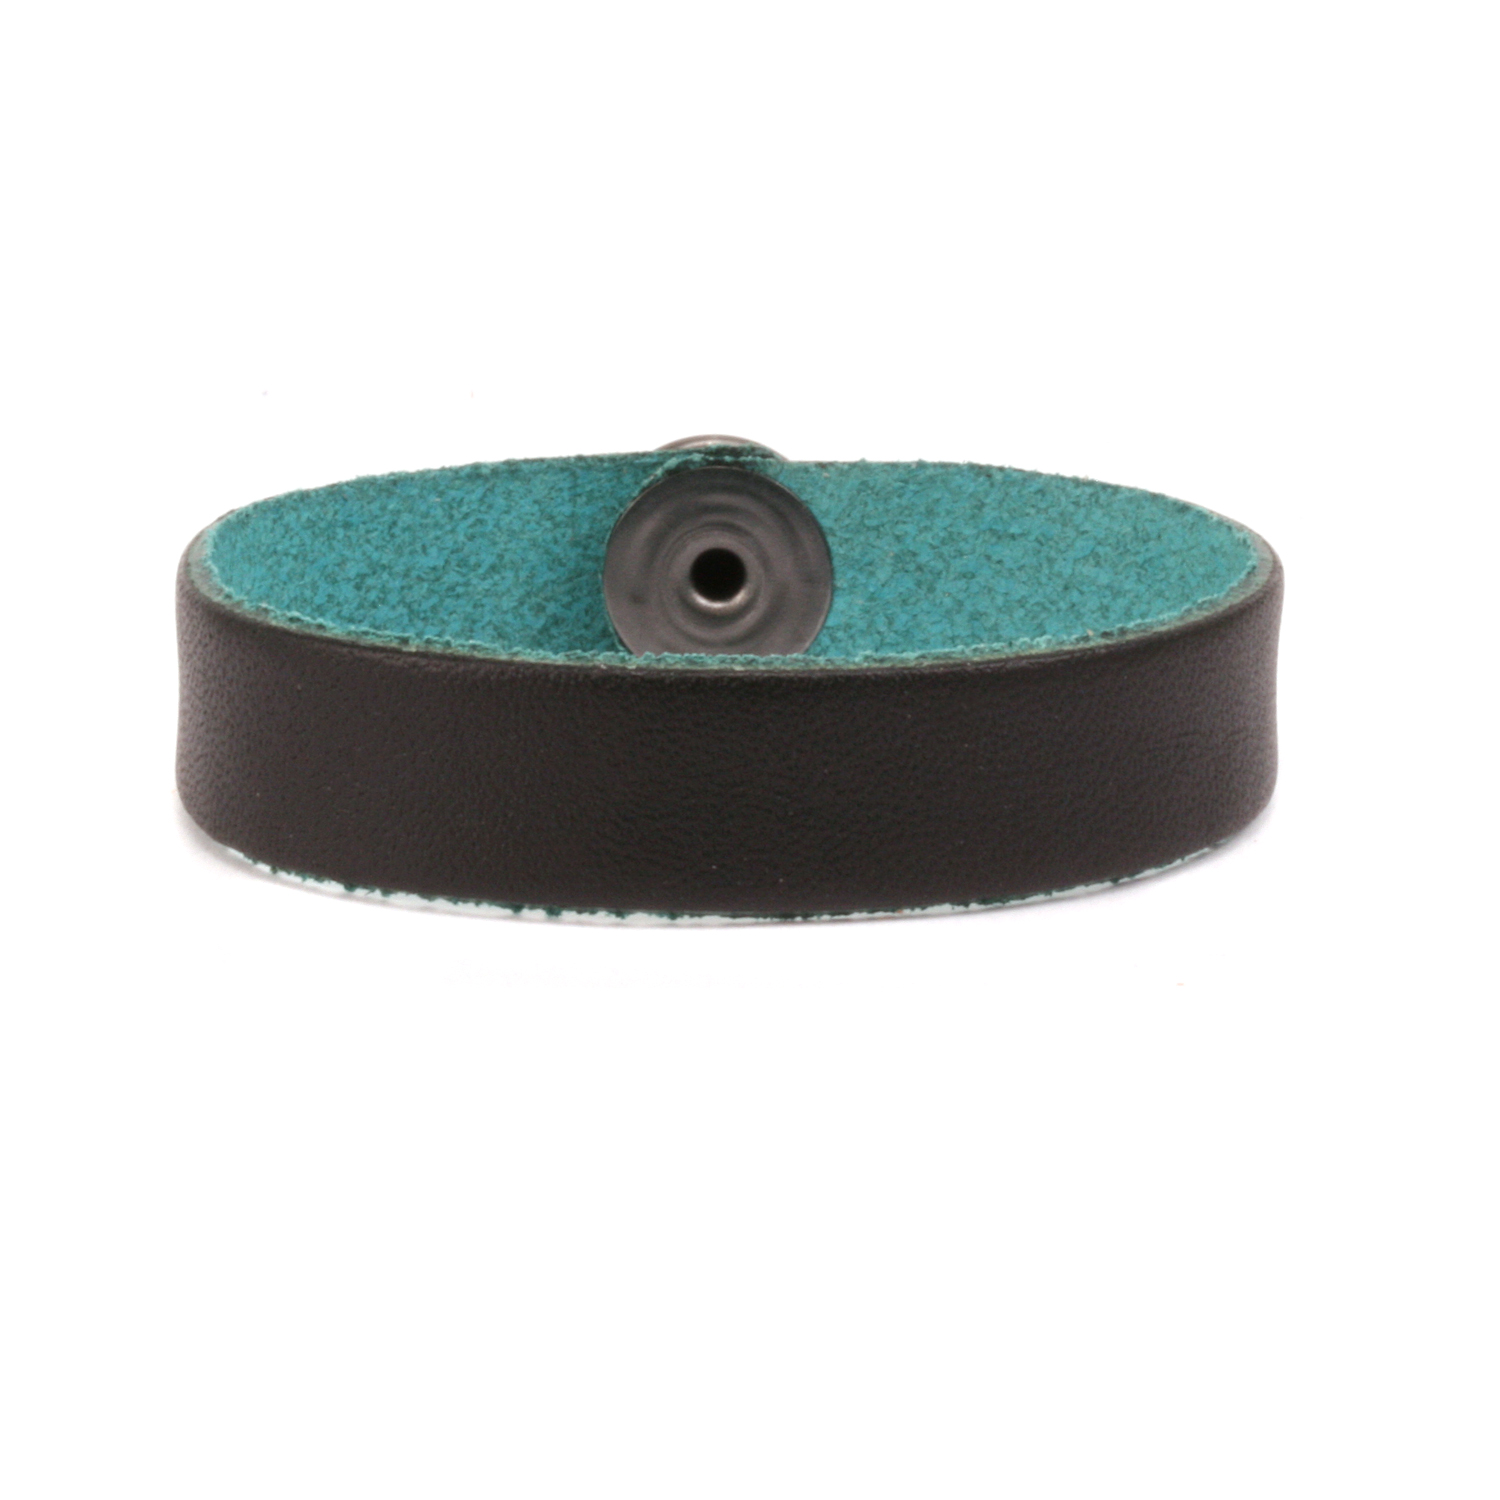 "Leather Bracelet 1/2"" Extra Small, Black/Turquoise"